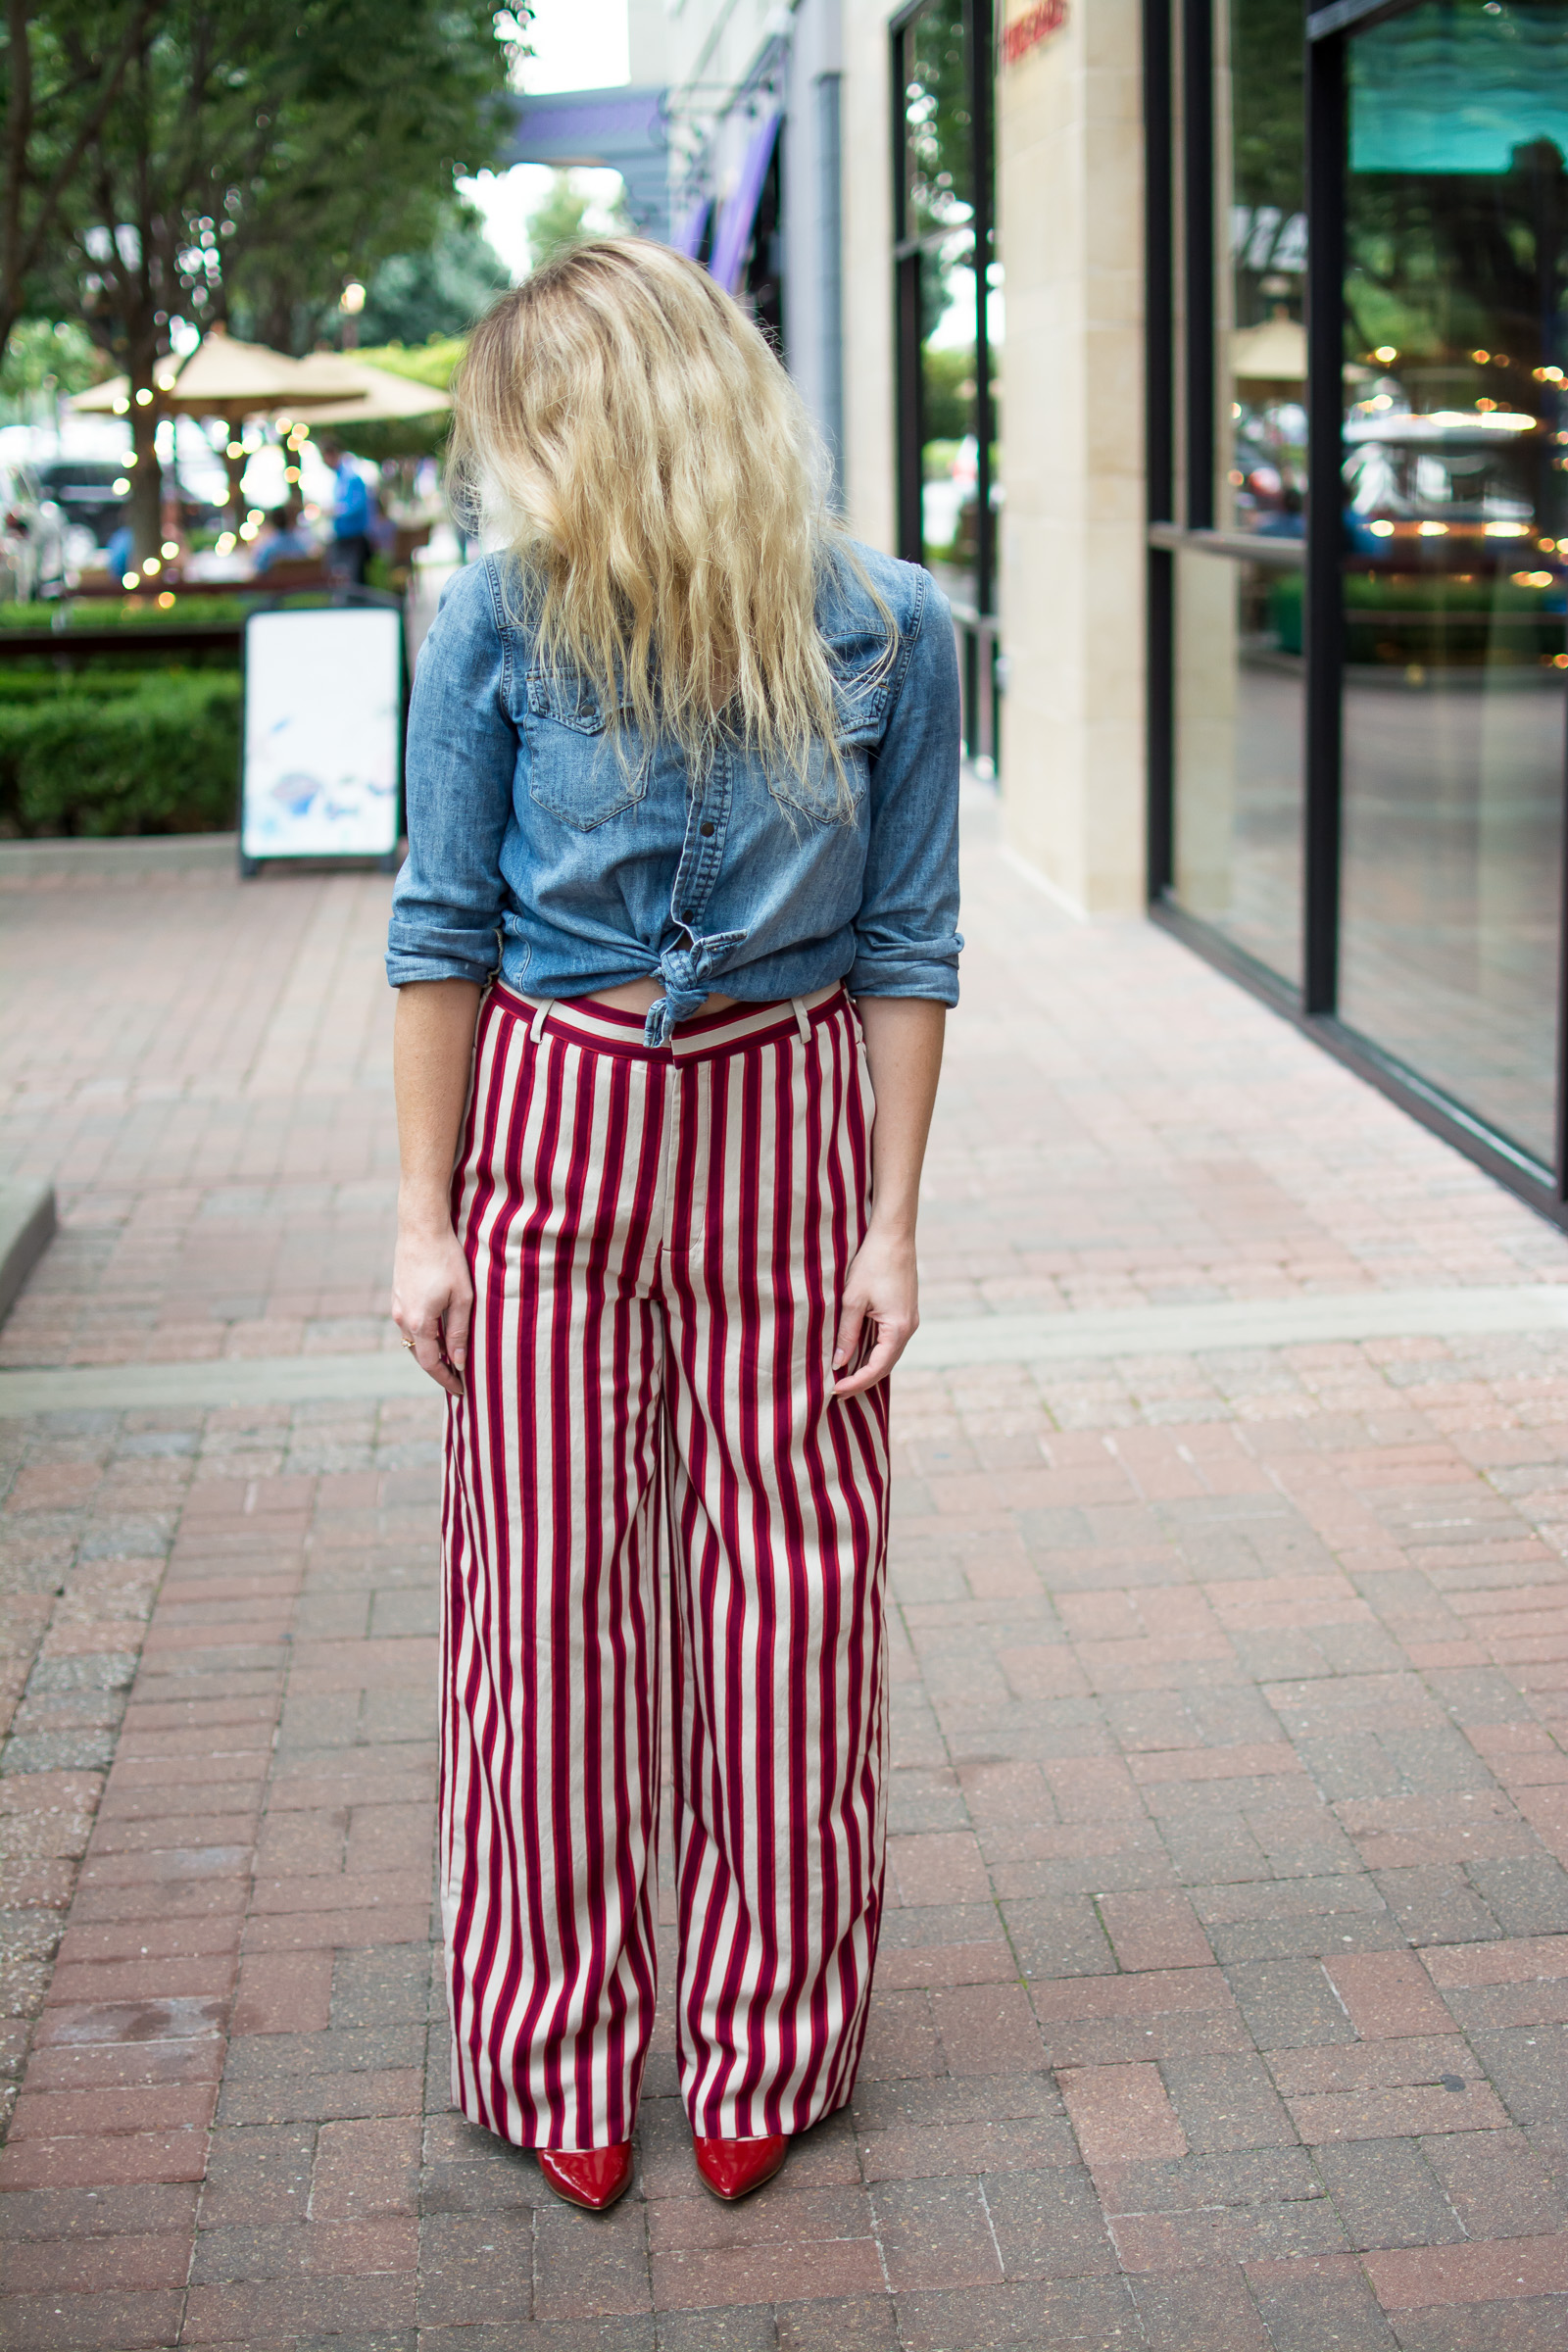 Wearing Striped Circus Pants. | Ashley from LSR